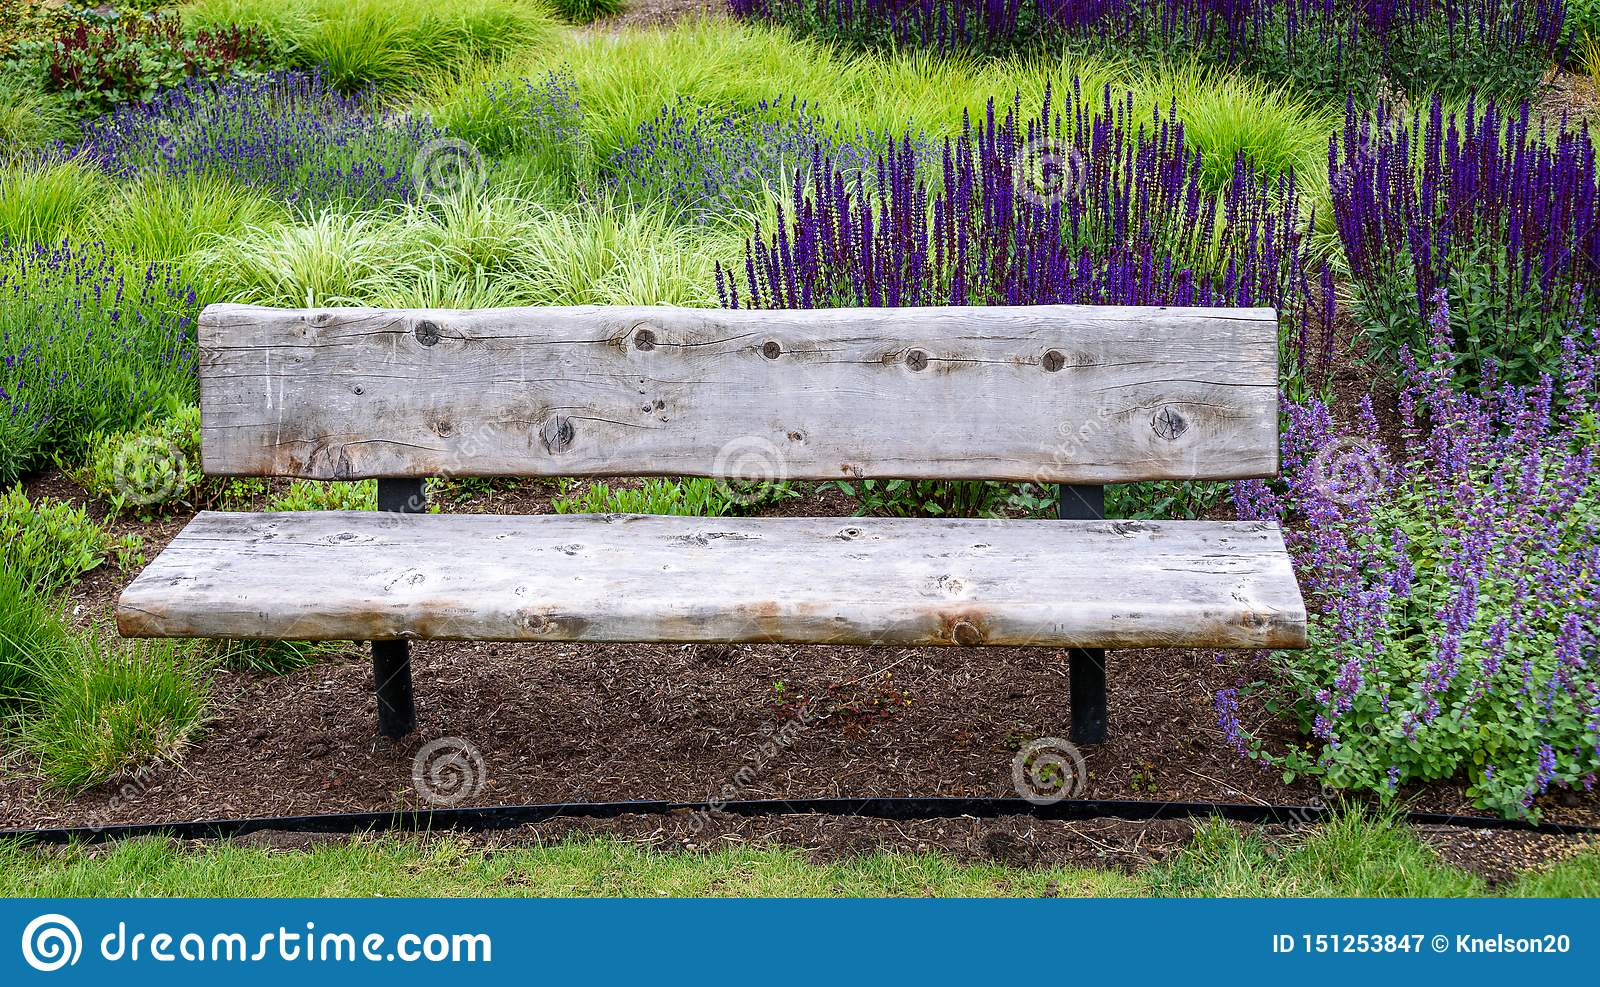 Astonishing Rustic Wood Garden Bench Surrounded By Ornamental Grasses Ncnpc Chair Design For Home Ncnpcorg